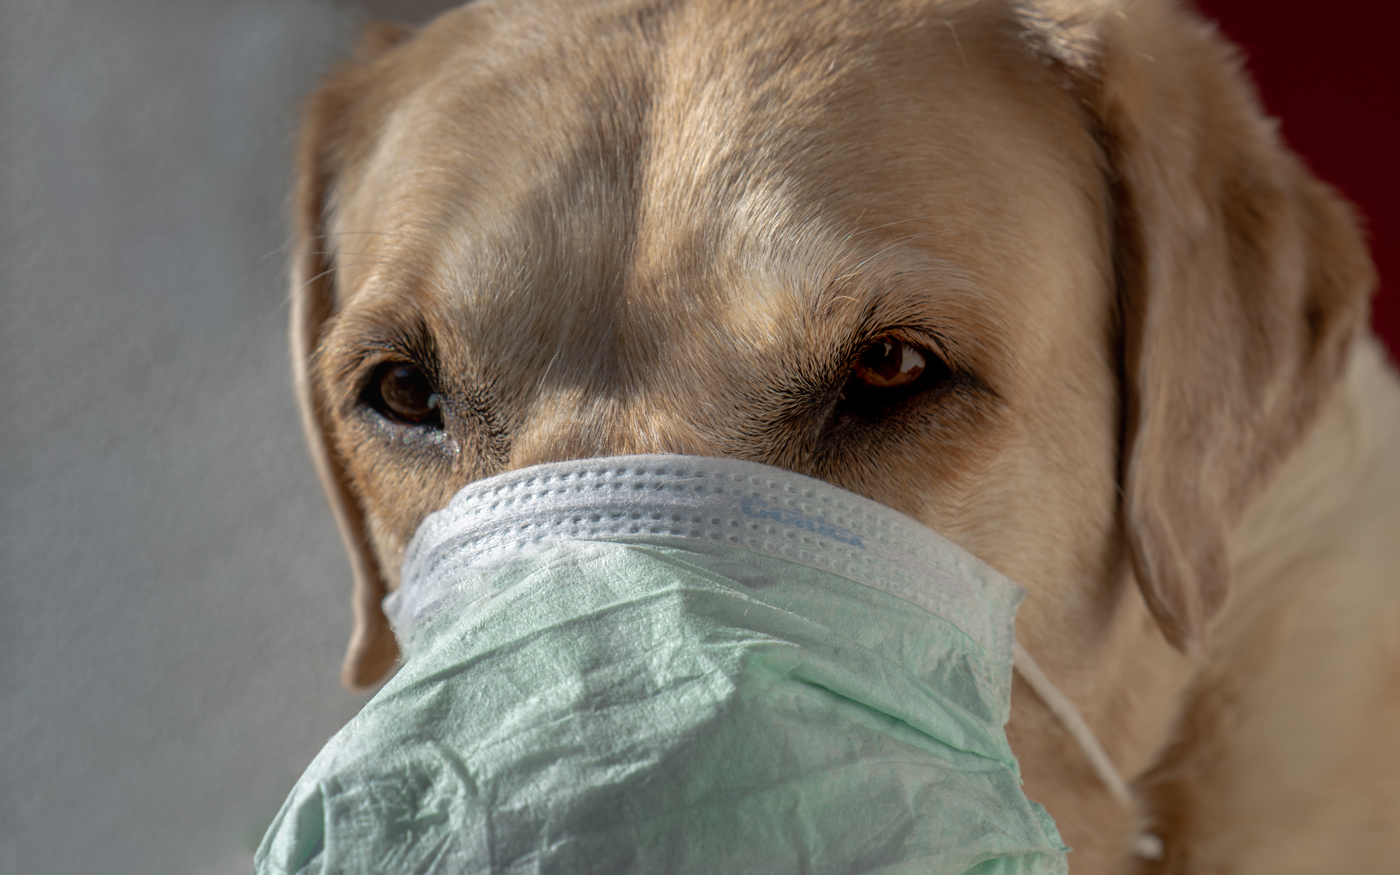 A Labrador with a medical mask covering its face